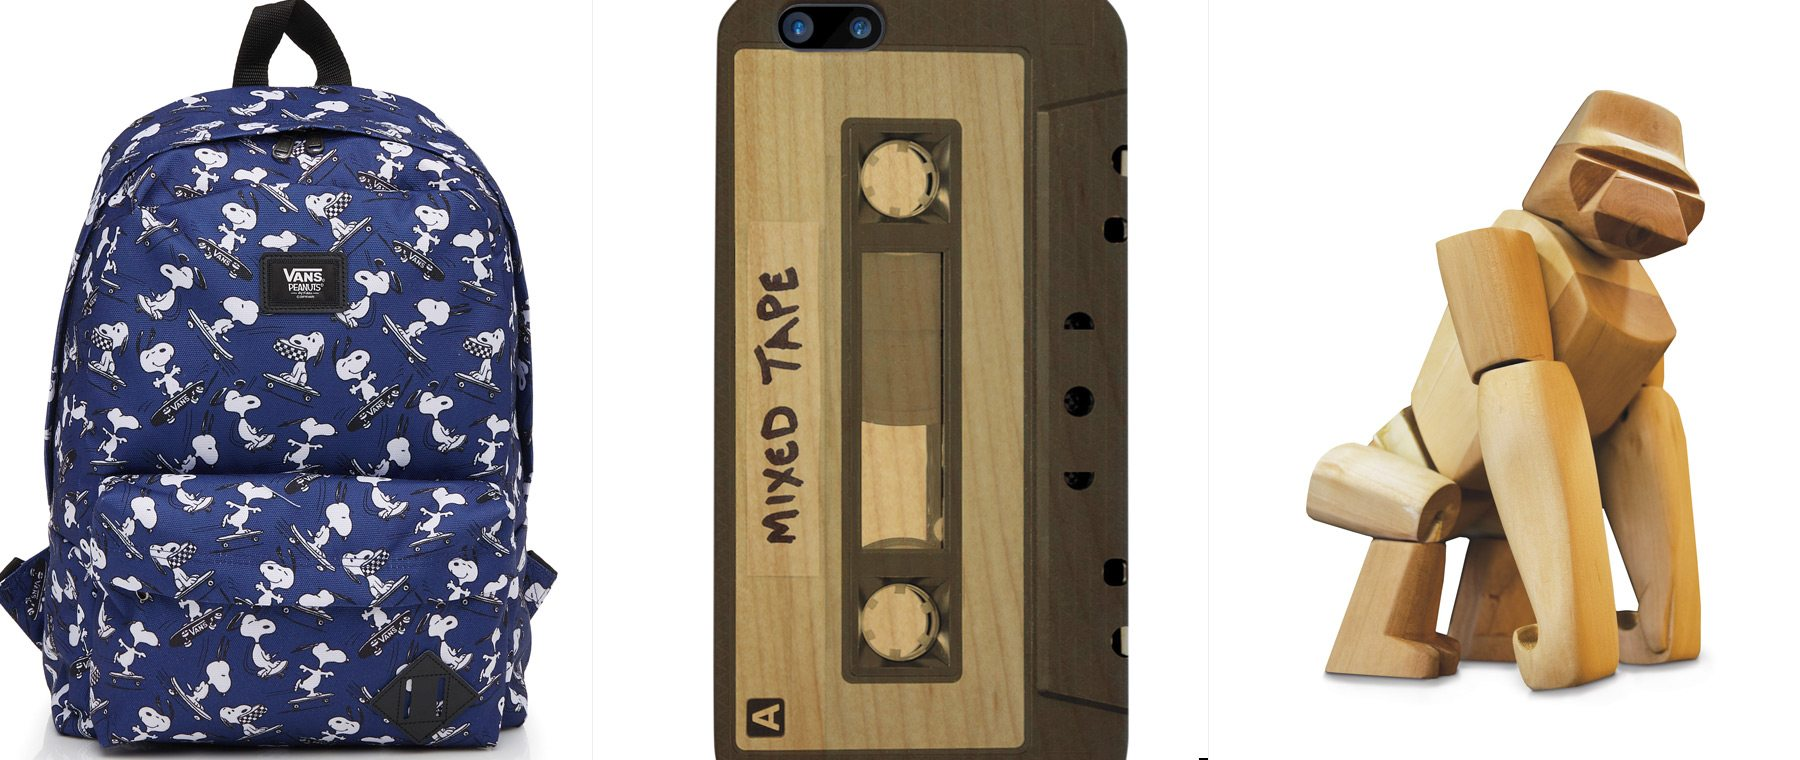 Make it a Charlie Brown Christmas! Snoopy trades in his Sopwith Camel for a skateboard in this Peanuts-inspired Vans backpack. $45. Simons. Is it mix tape or mixed tape? Regardless, go analog with this phone case — don't worry, it won't unspool. $36. Boogie & Birdie. Named after an ancient mariner who supposedly discovered gorillas for the Greeks, Hanno the Gorilla can hold poses, hook to objects, and is durable thanks to his hardwood frame. $150. The Modern Shop